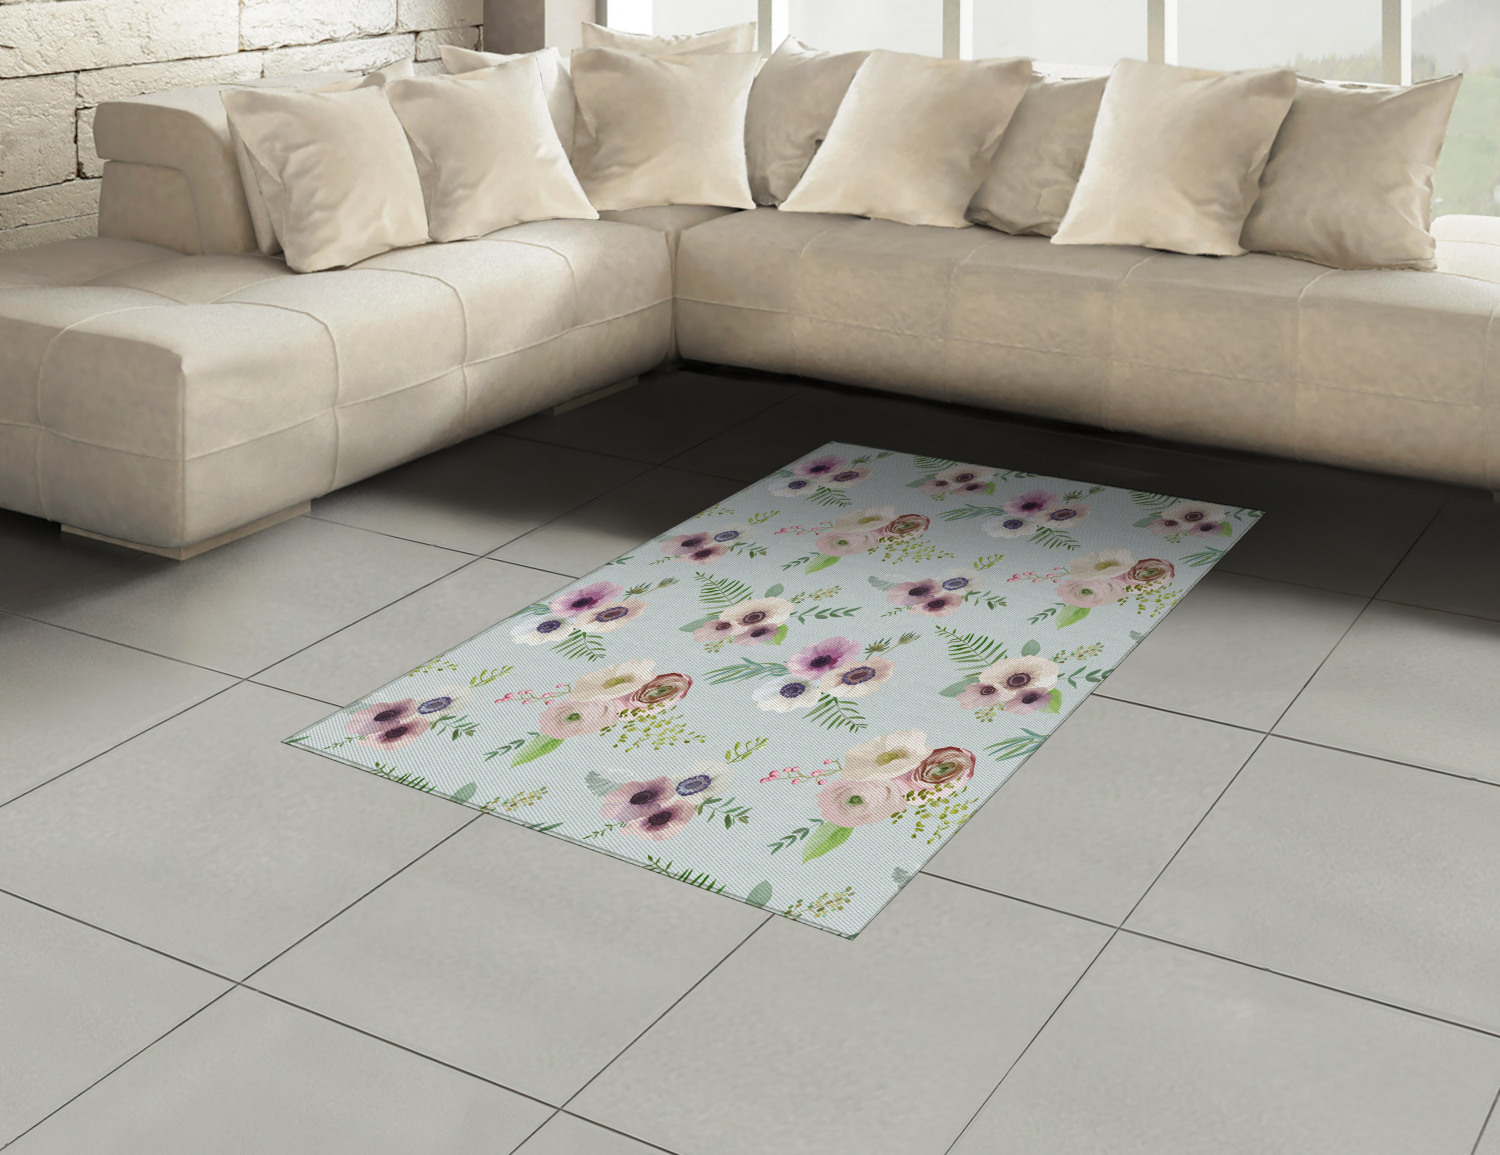 Anemone-Flower-Area-Rug-Decor-Flat-Woven-Accent-Rug-Home-Decor-2-Sizes-Ambesonne thumbnail 44